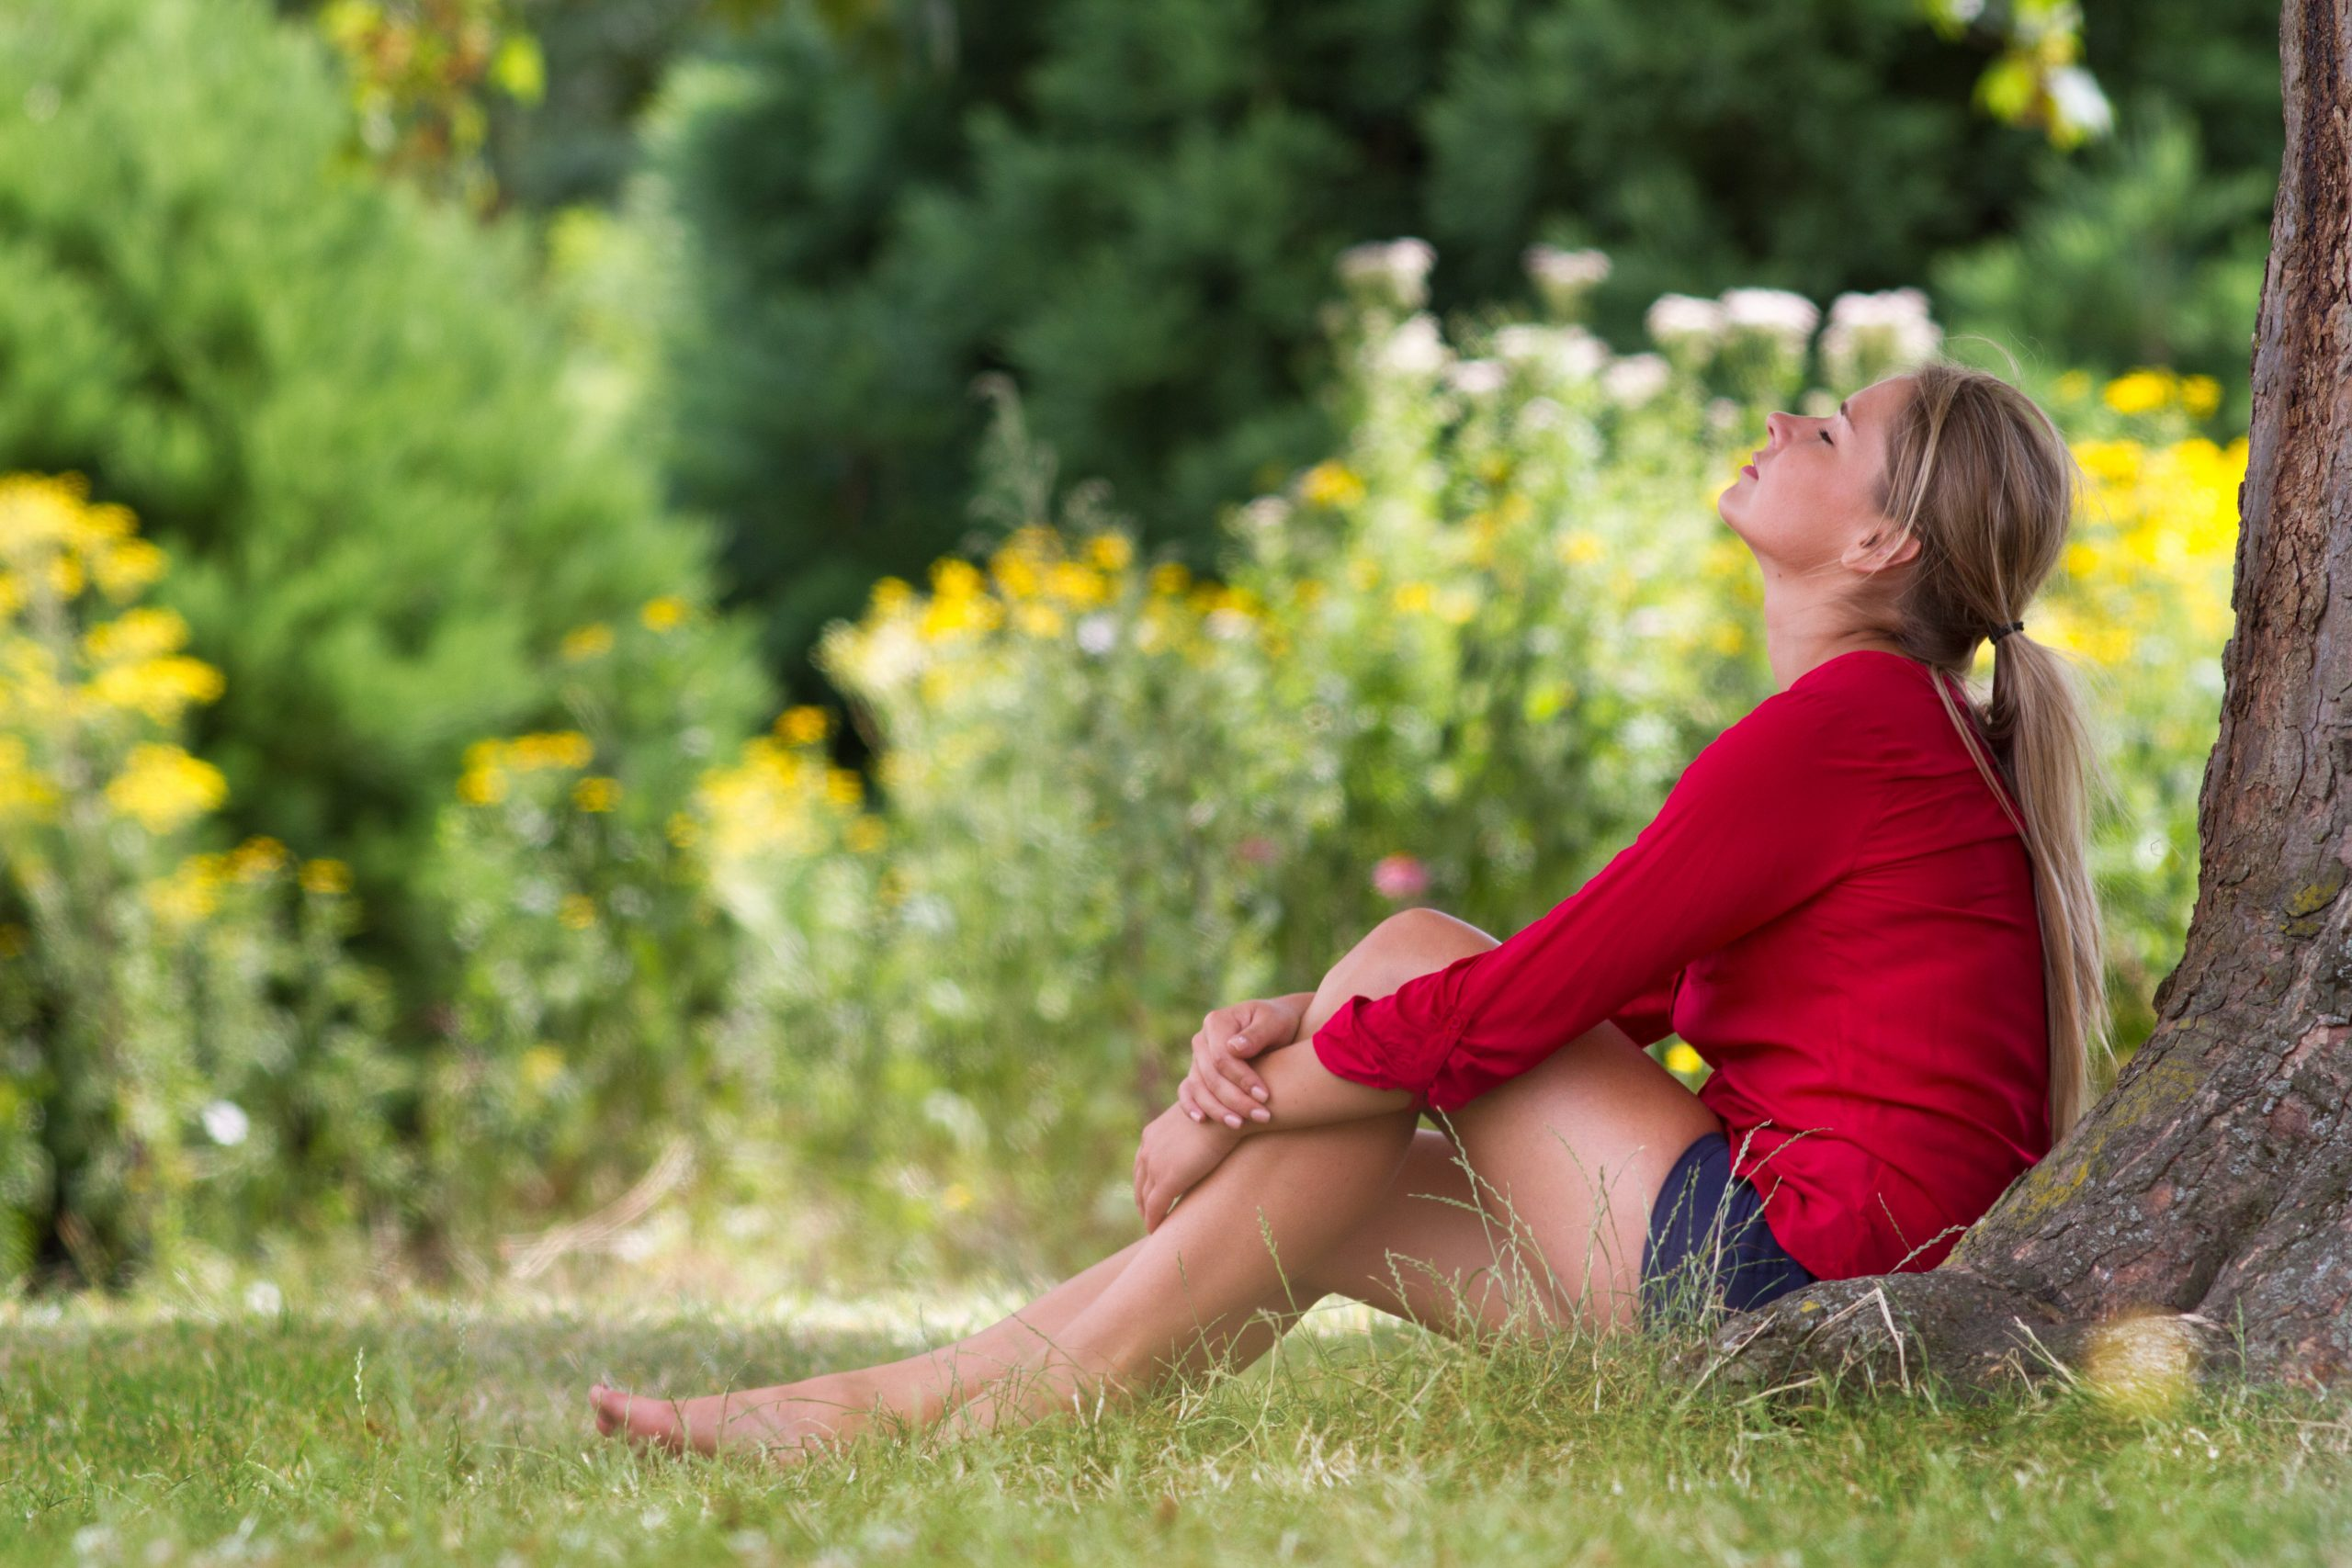 Gina Rolkowski shares how to heal from childhood trauma by getting out of your mind and noticing how your body expresses your feelings. Image shows a young woman wearing shorts and a red sweater under a tree with her eyes closed.